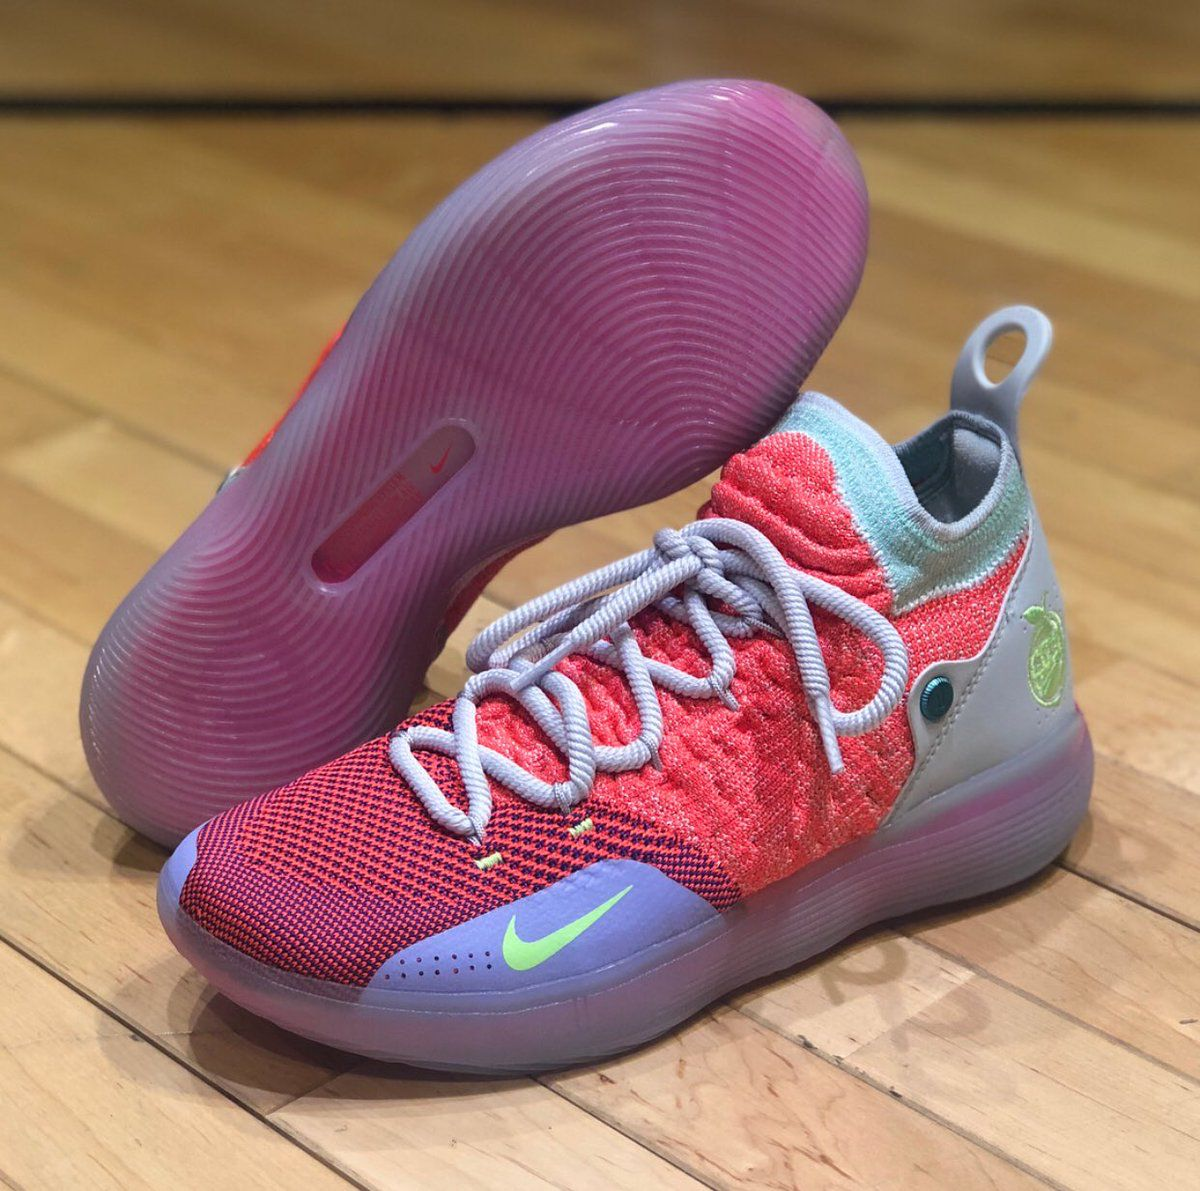 Here Is A First Look At The Nike KD 13 •